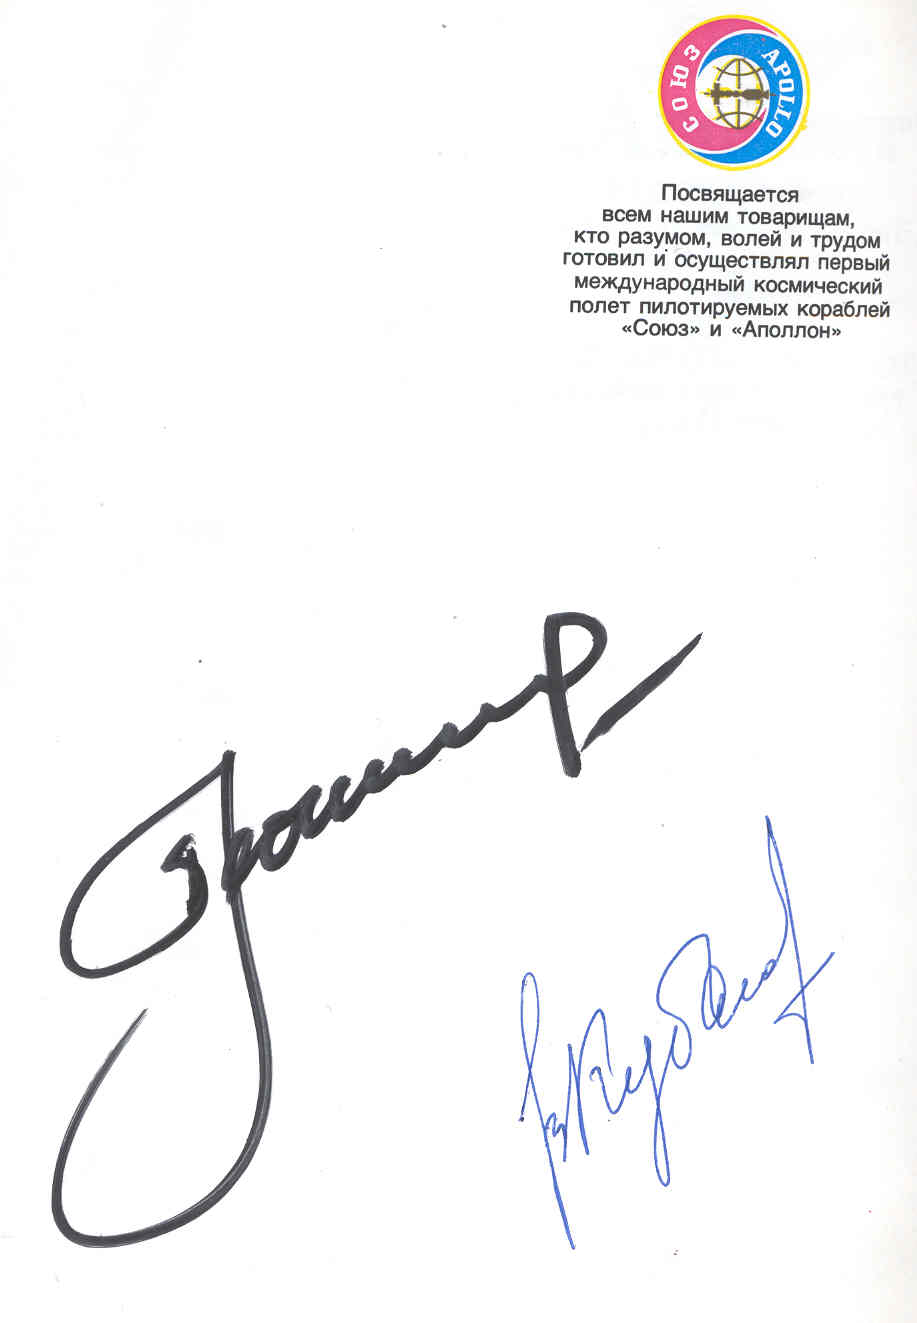 # astp100            Soyuz-Apollo book autographed by Soyuz-19 cosmonauts Leonov and Kubasov 2